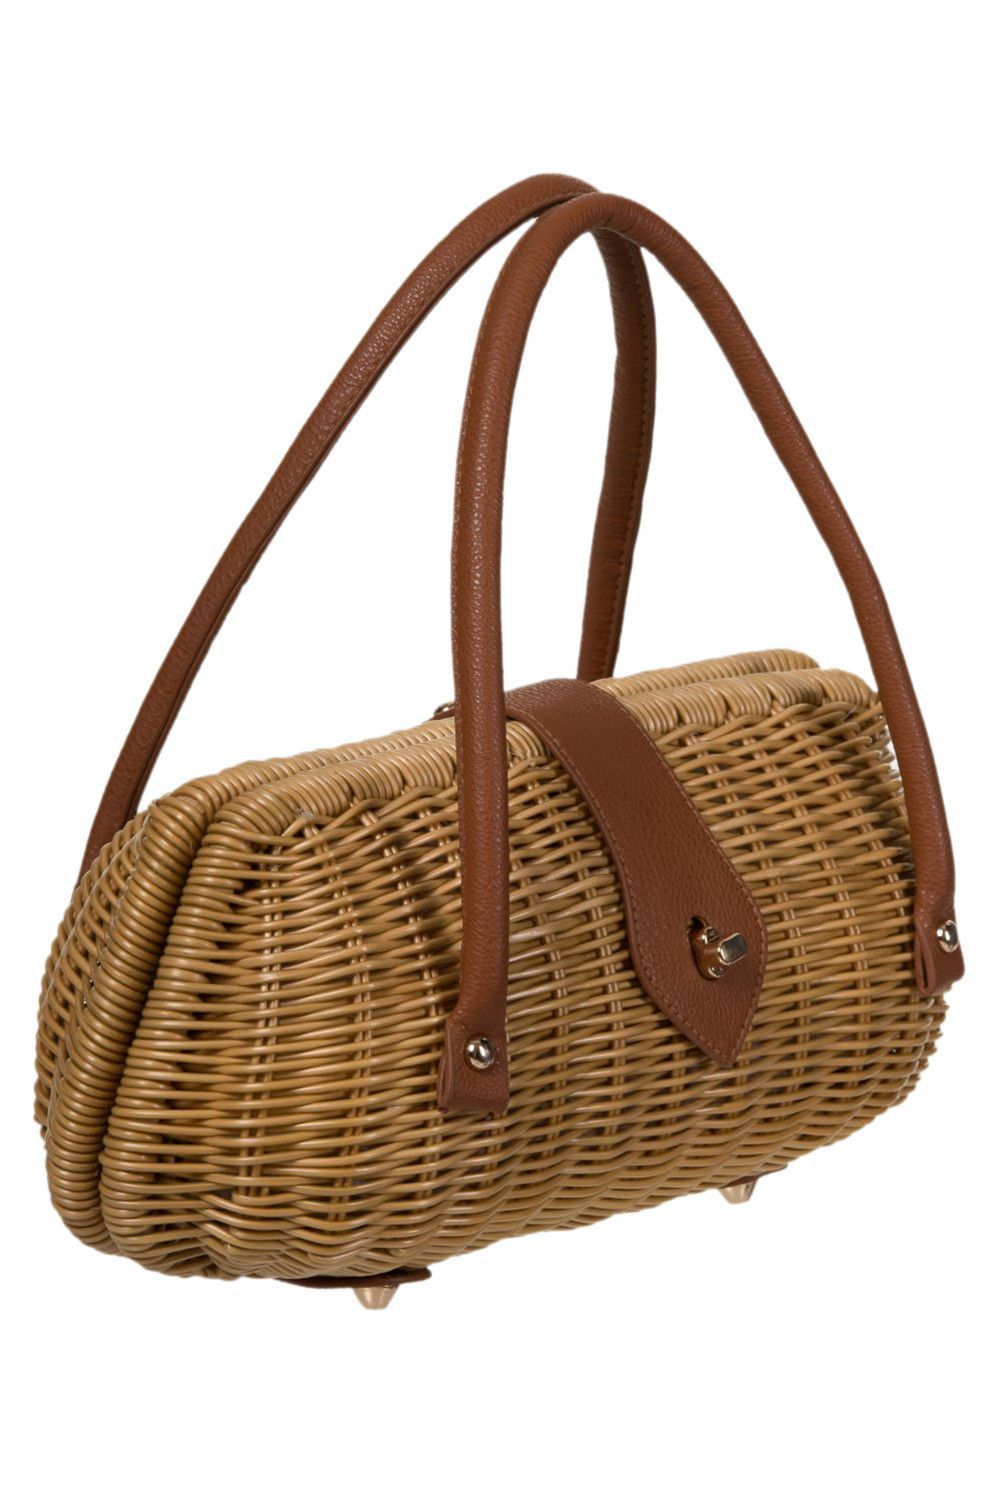 Vintage Style Brown Wicker basket Handbag